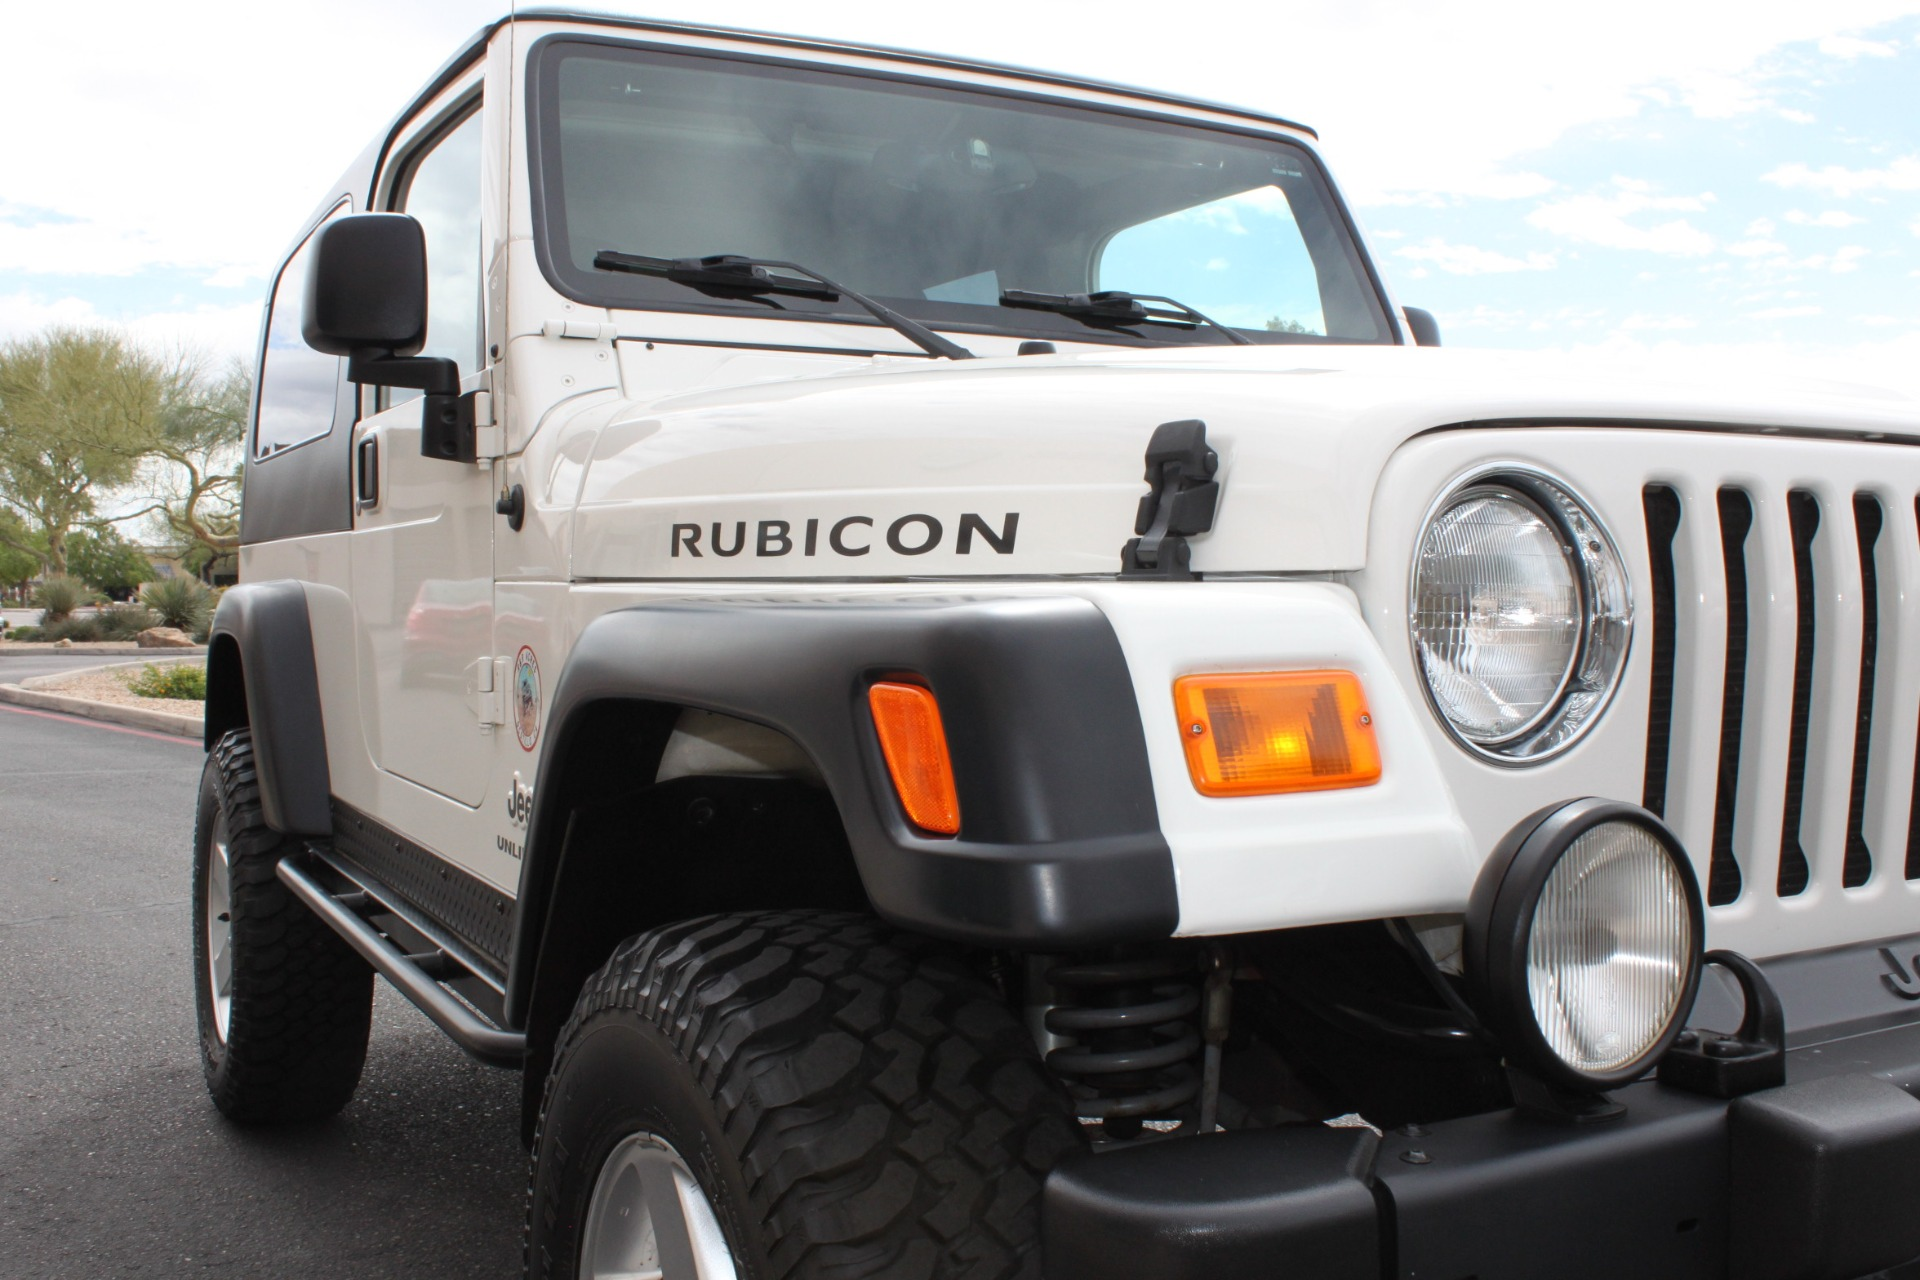 Used-2006-Jeep-Wrangler-Unlimited-Rubicon-LWB-Lexus